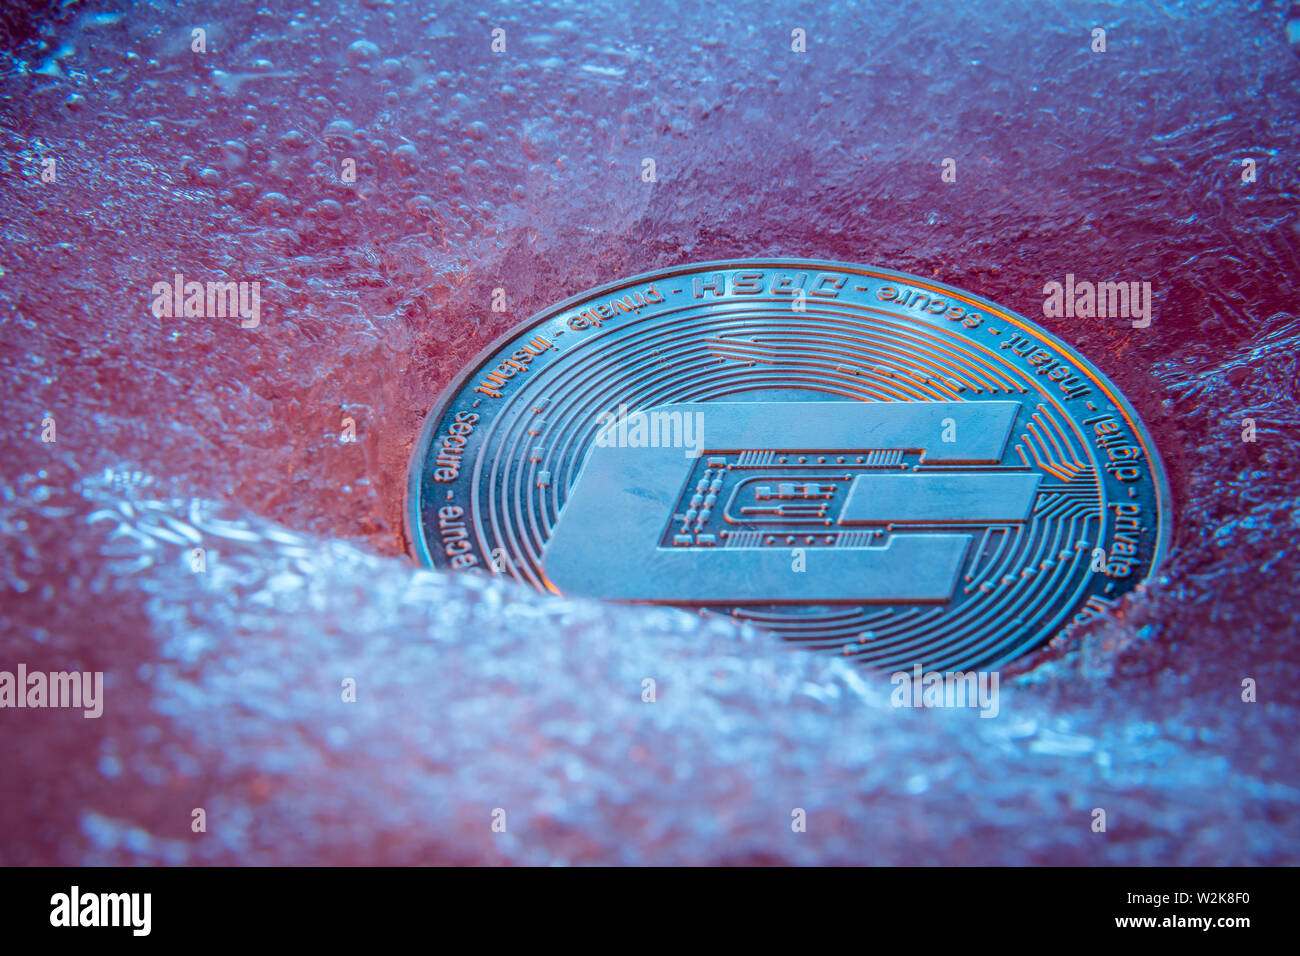 Silver Dash coin, online digital currency frozen in the blue ice. Concept of block chain, market crash. Frozen crypto money, depreciation - Stock Image